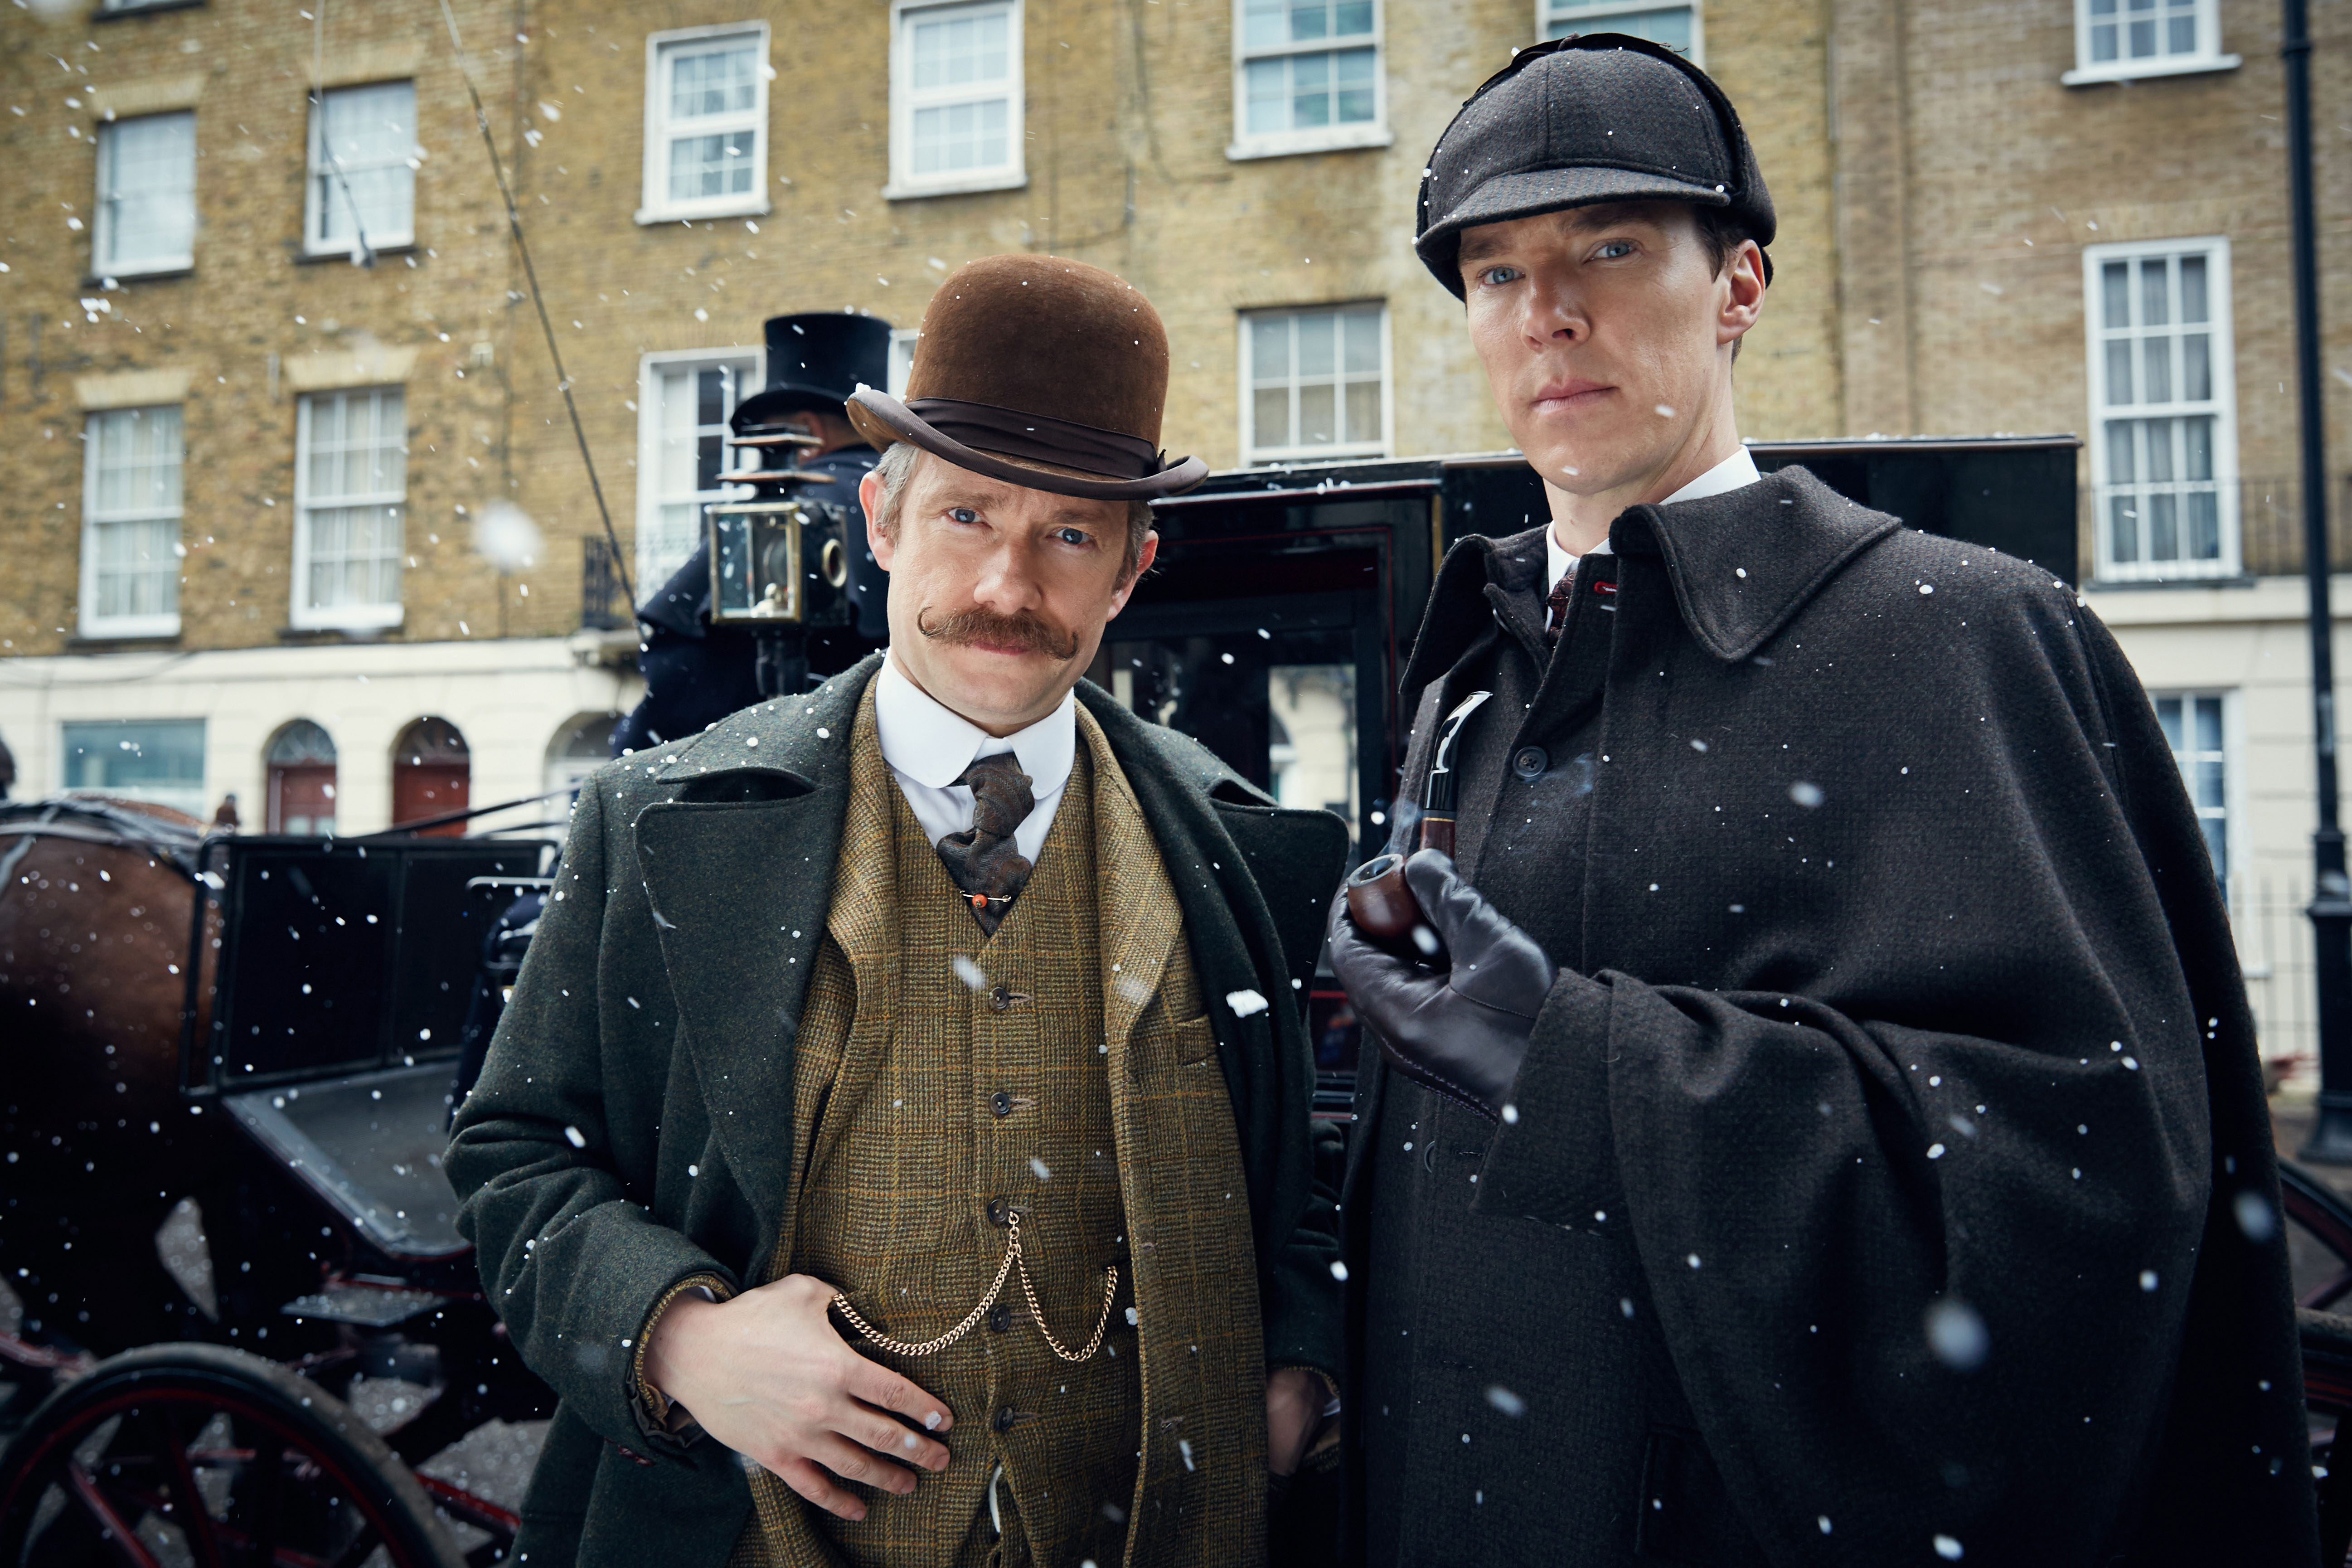 MASTERPIECE Sherlock: The Abominable Bride Picture Shows: MARTIN FREEMAN as John Watson and BENEDICT CUMBERBATCH as Sherlock Holmes © Robert Viglasky/Hartswood Films and BBC Wales for BBC One and MASTERPIECE This image may be used only in the direct promotion of MASTERPIECE. No other rights are granted. All rights are reserved. Editorial use only.